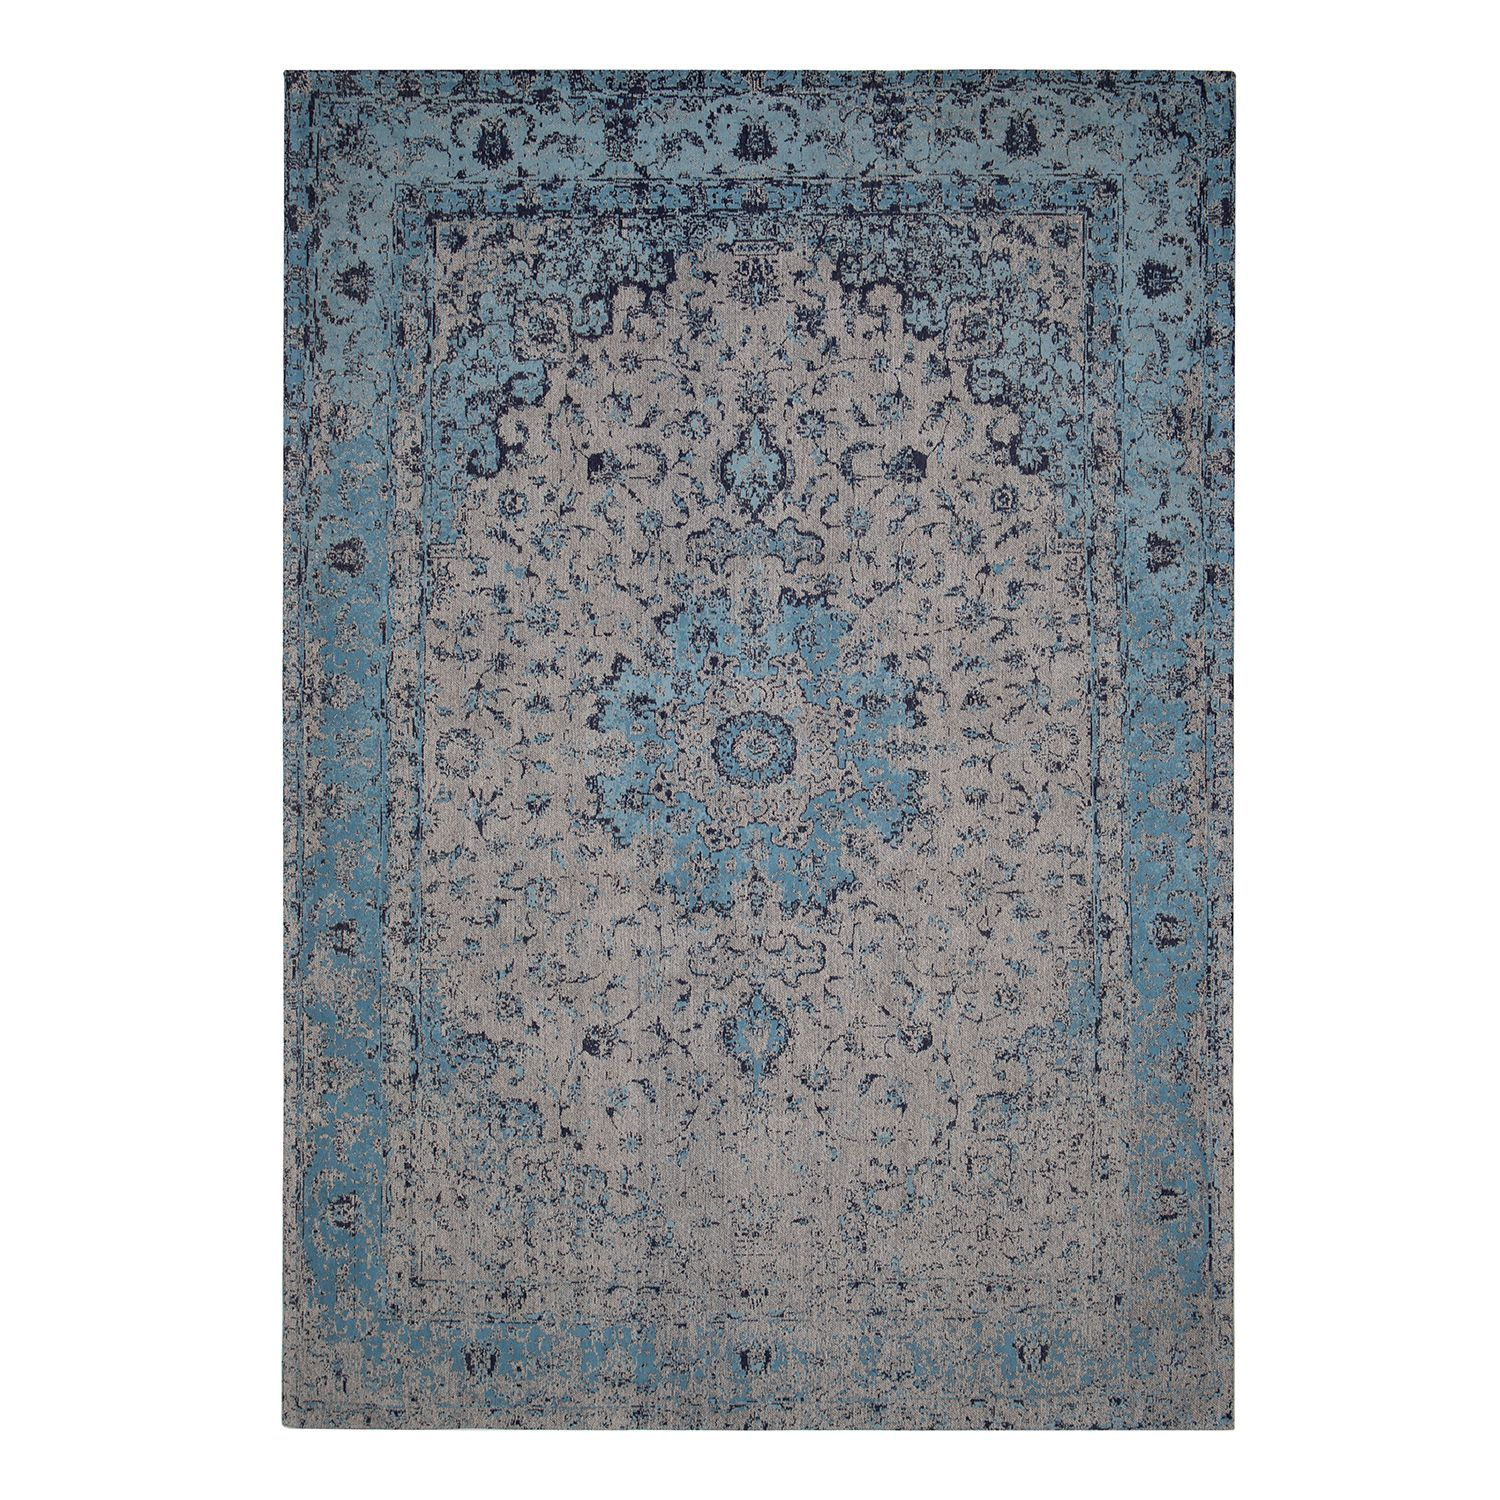 Esszimmer Teppich 300x400 Vintage Teppich Empesos Products In 2019 Home Decor Rugs Und